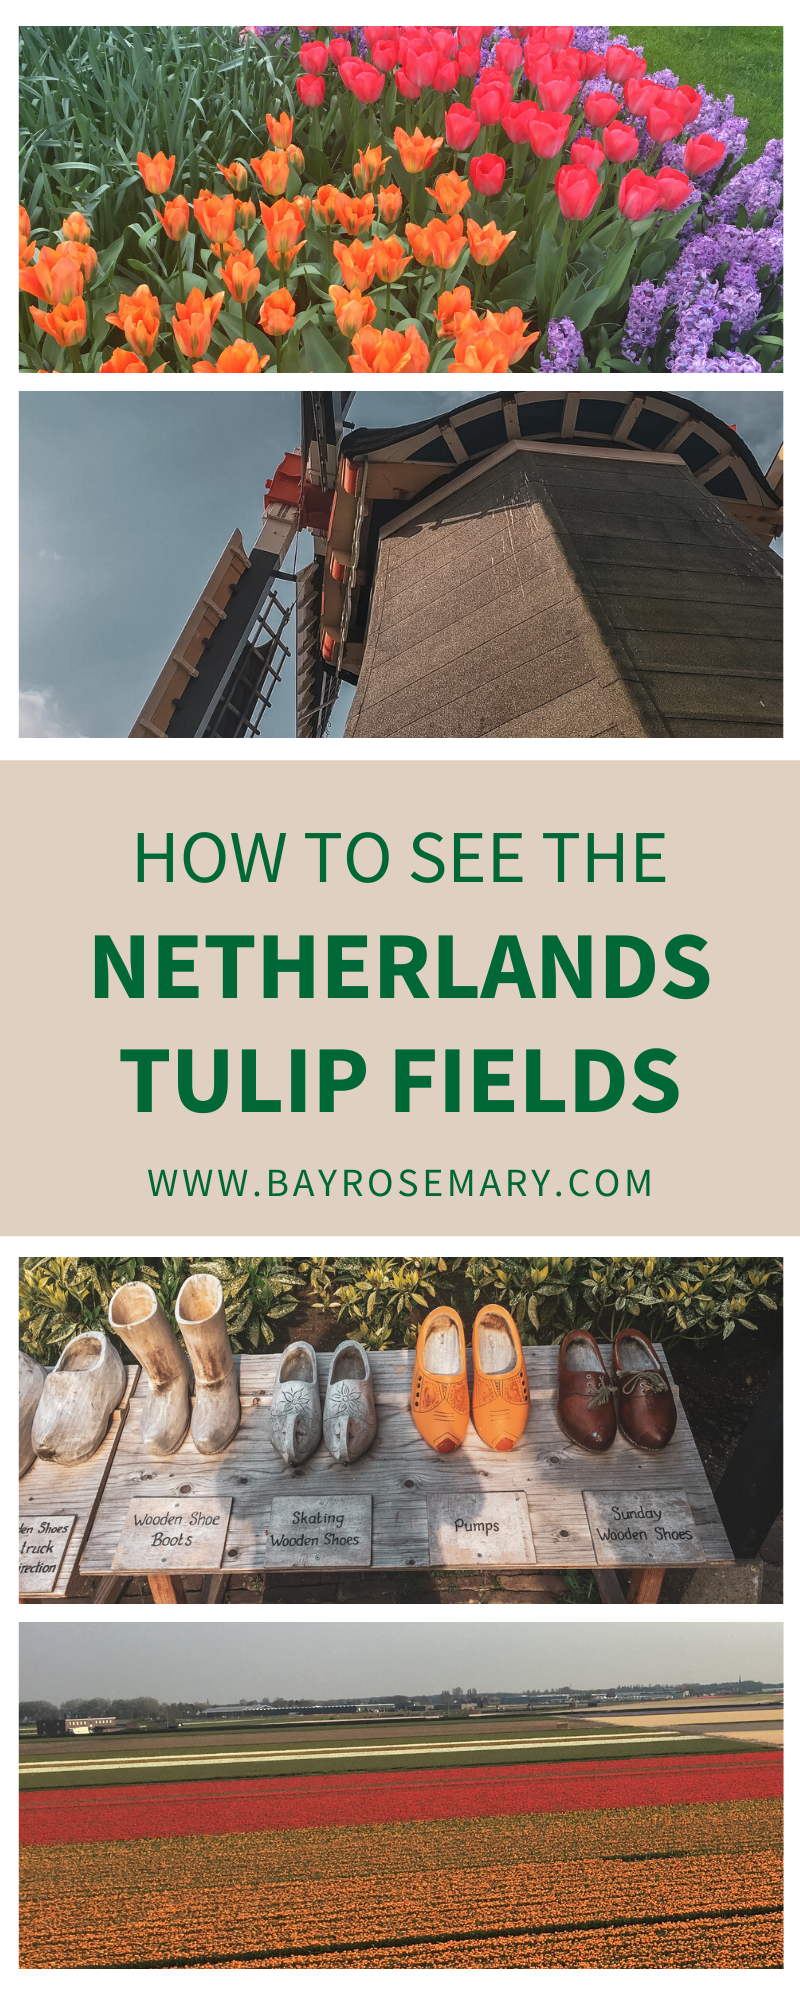 How to see the Netherlands' tulip fields